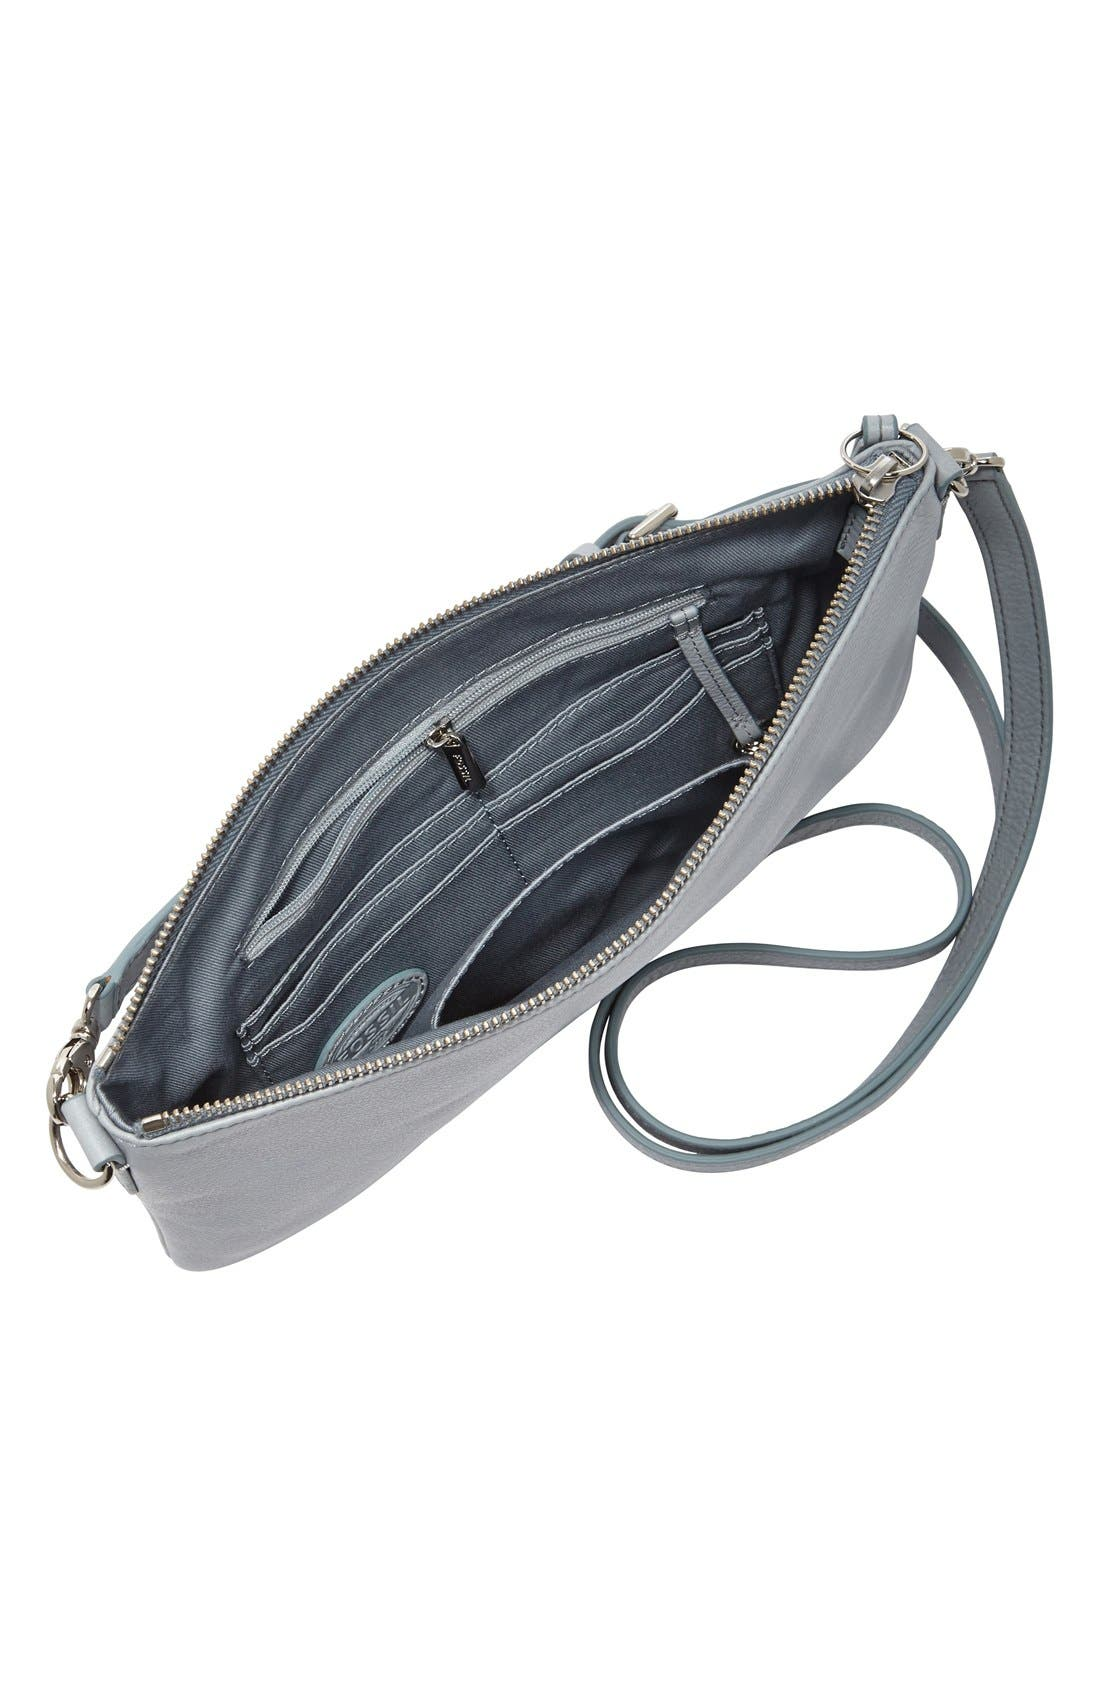 Alternate Image 3  - Fossil 'Sydney' Crossbody Bag